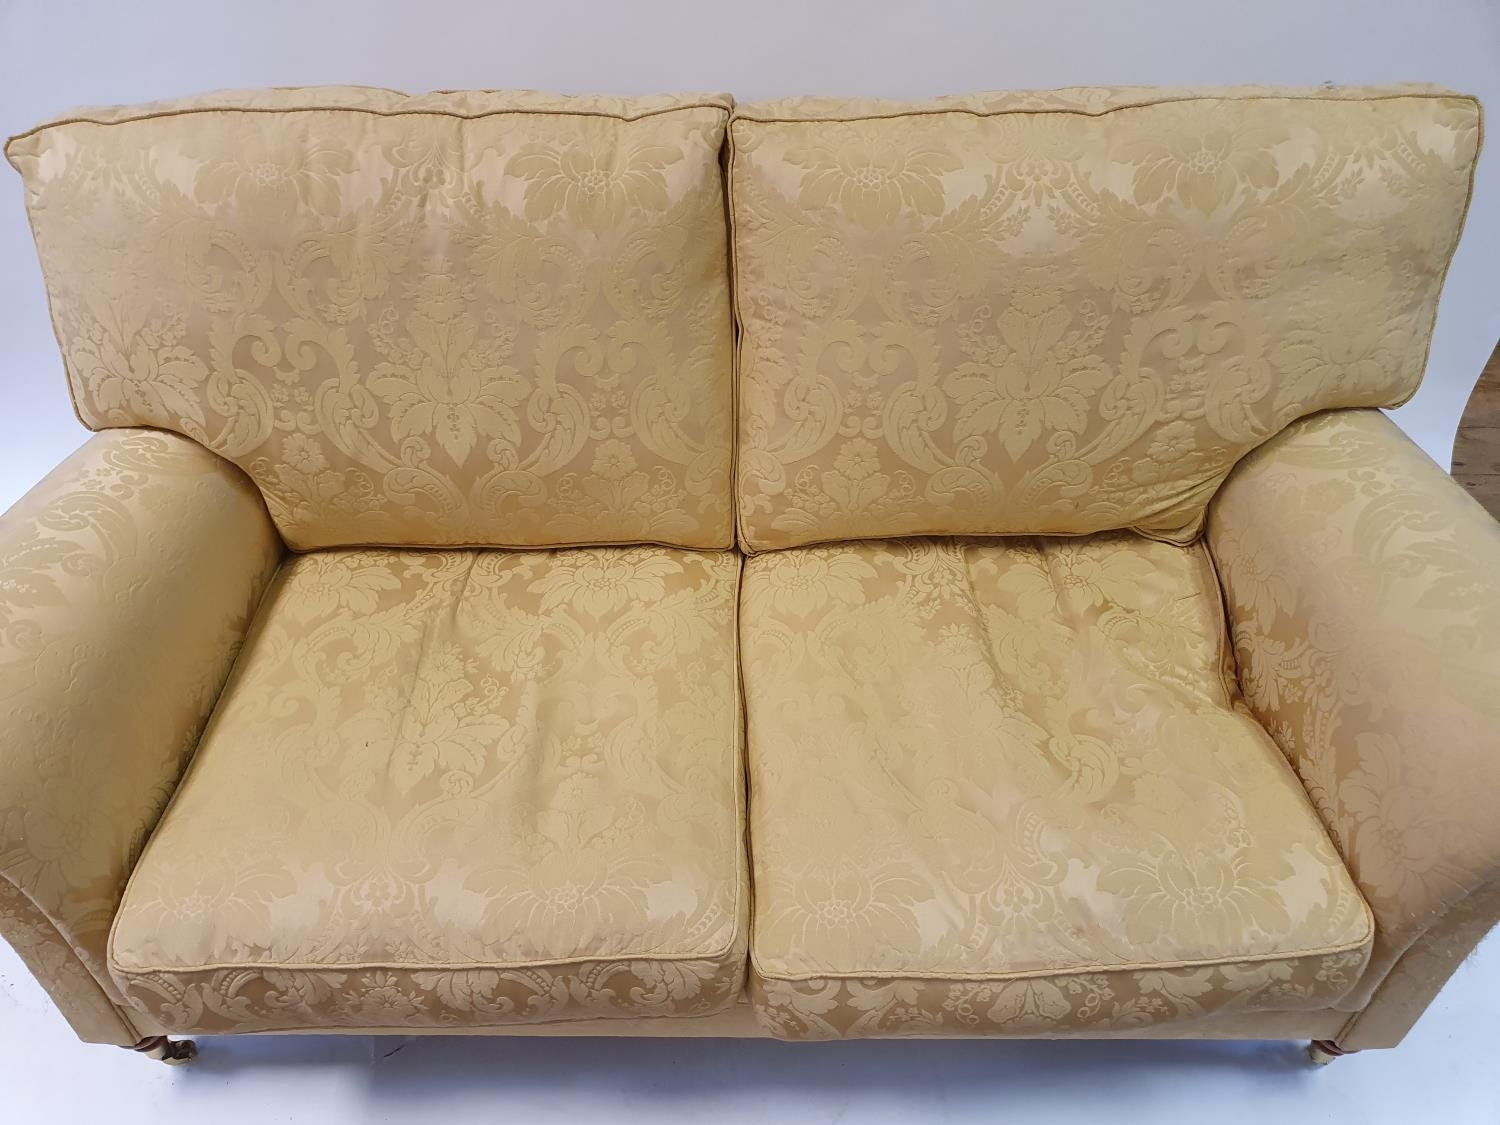 A Wesley Barrell Victorian style two seater settee, on turned front legs - Image 3 of 3